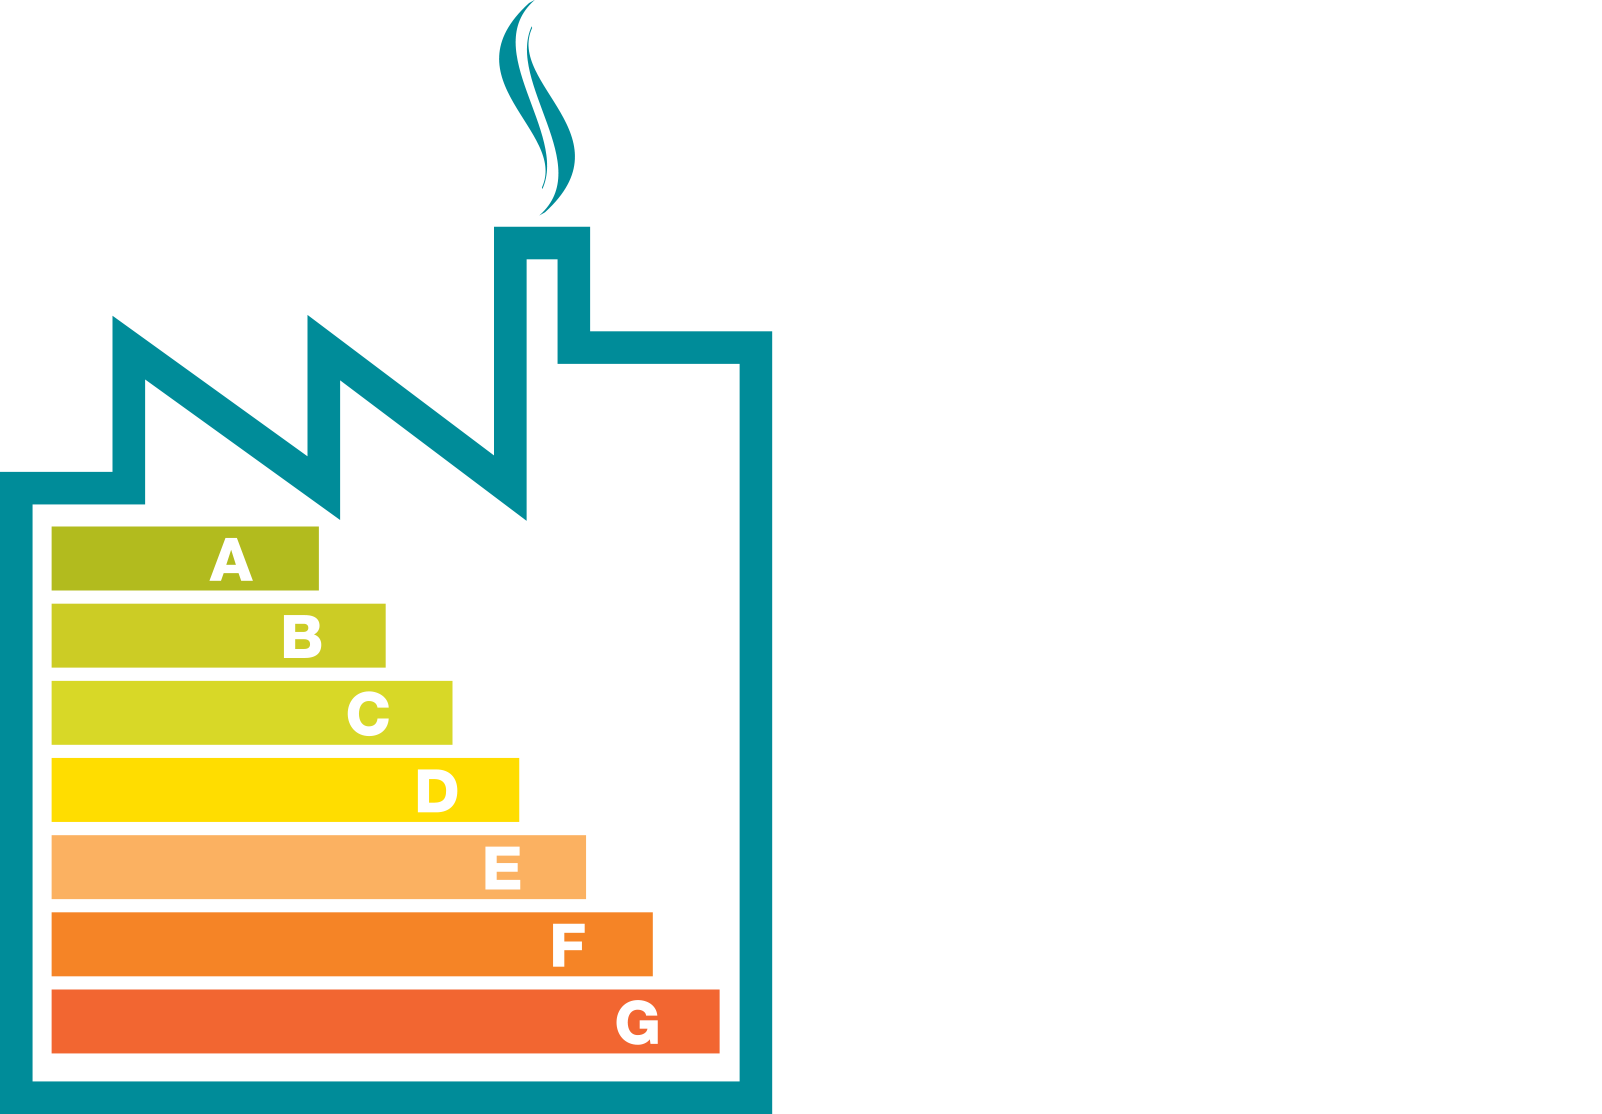 Wise Energy (UK)